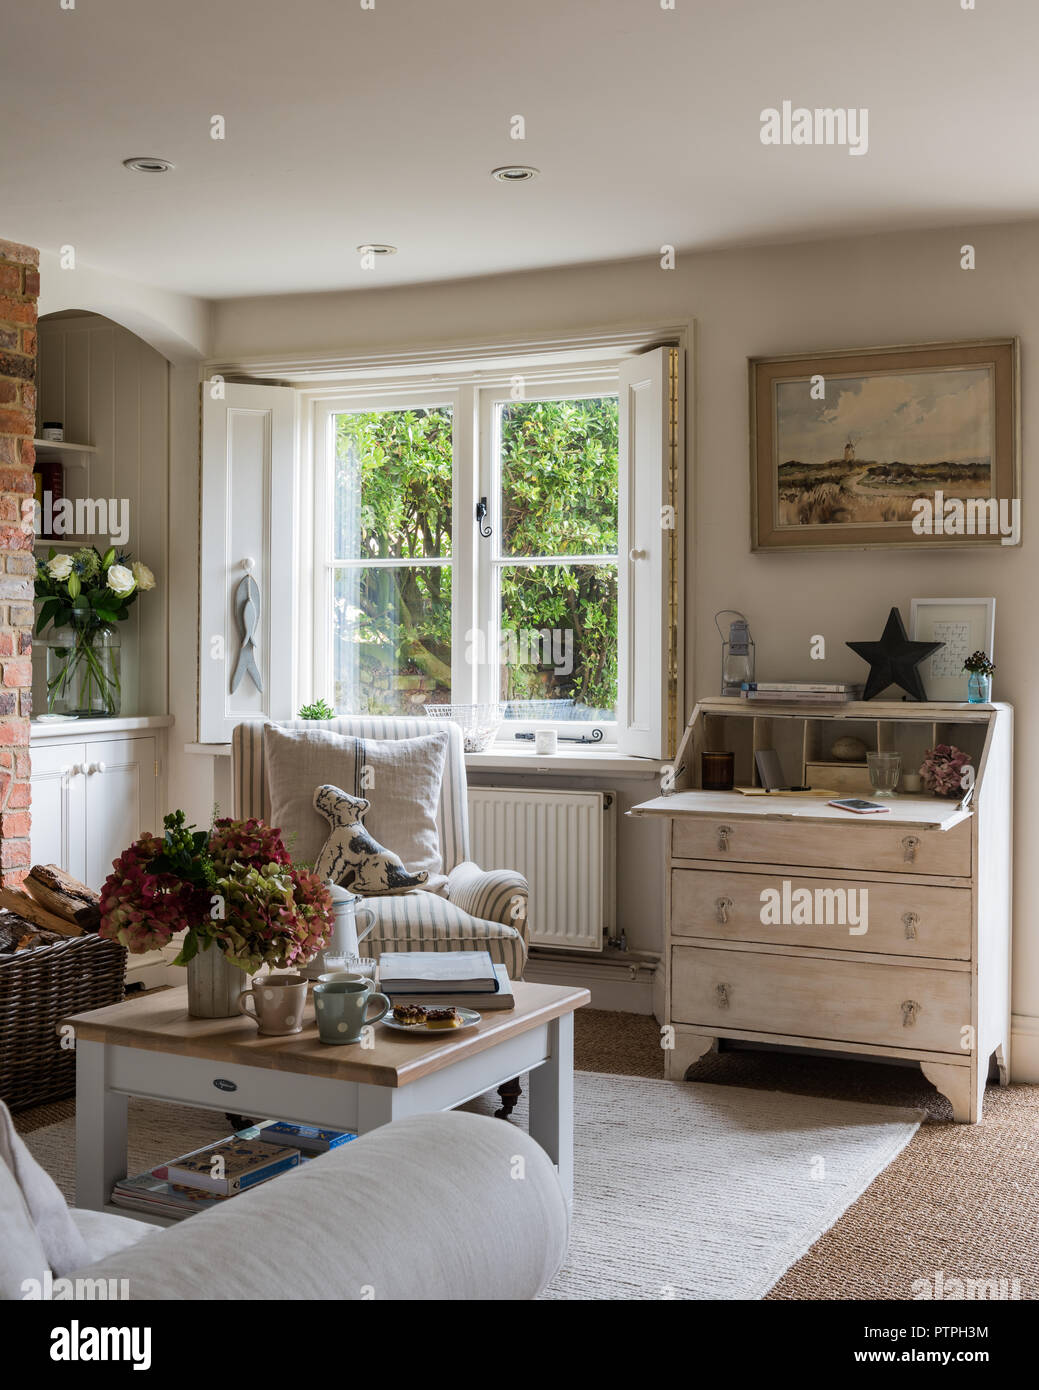 Upcycled antique bureau beside window in 18th century Norfolk cottage - Stock Image